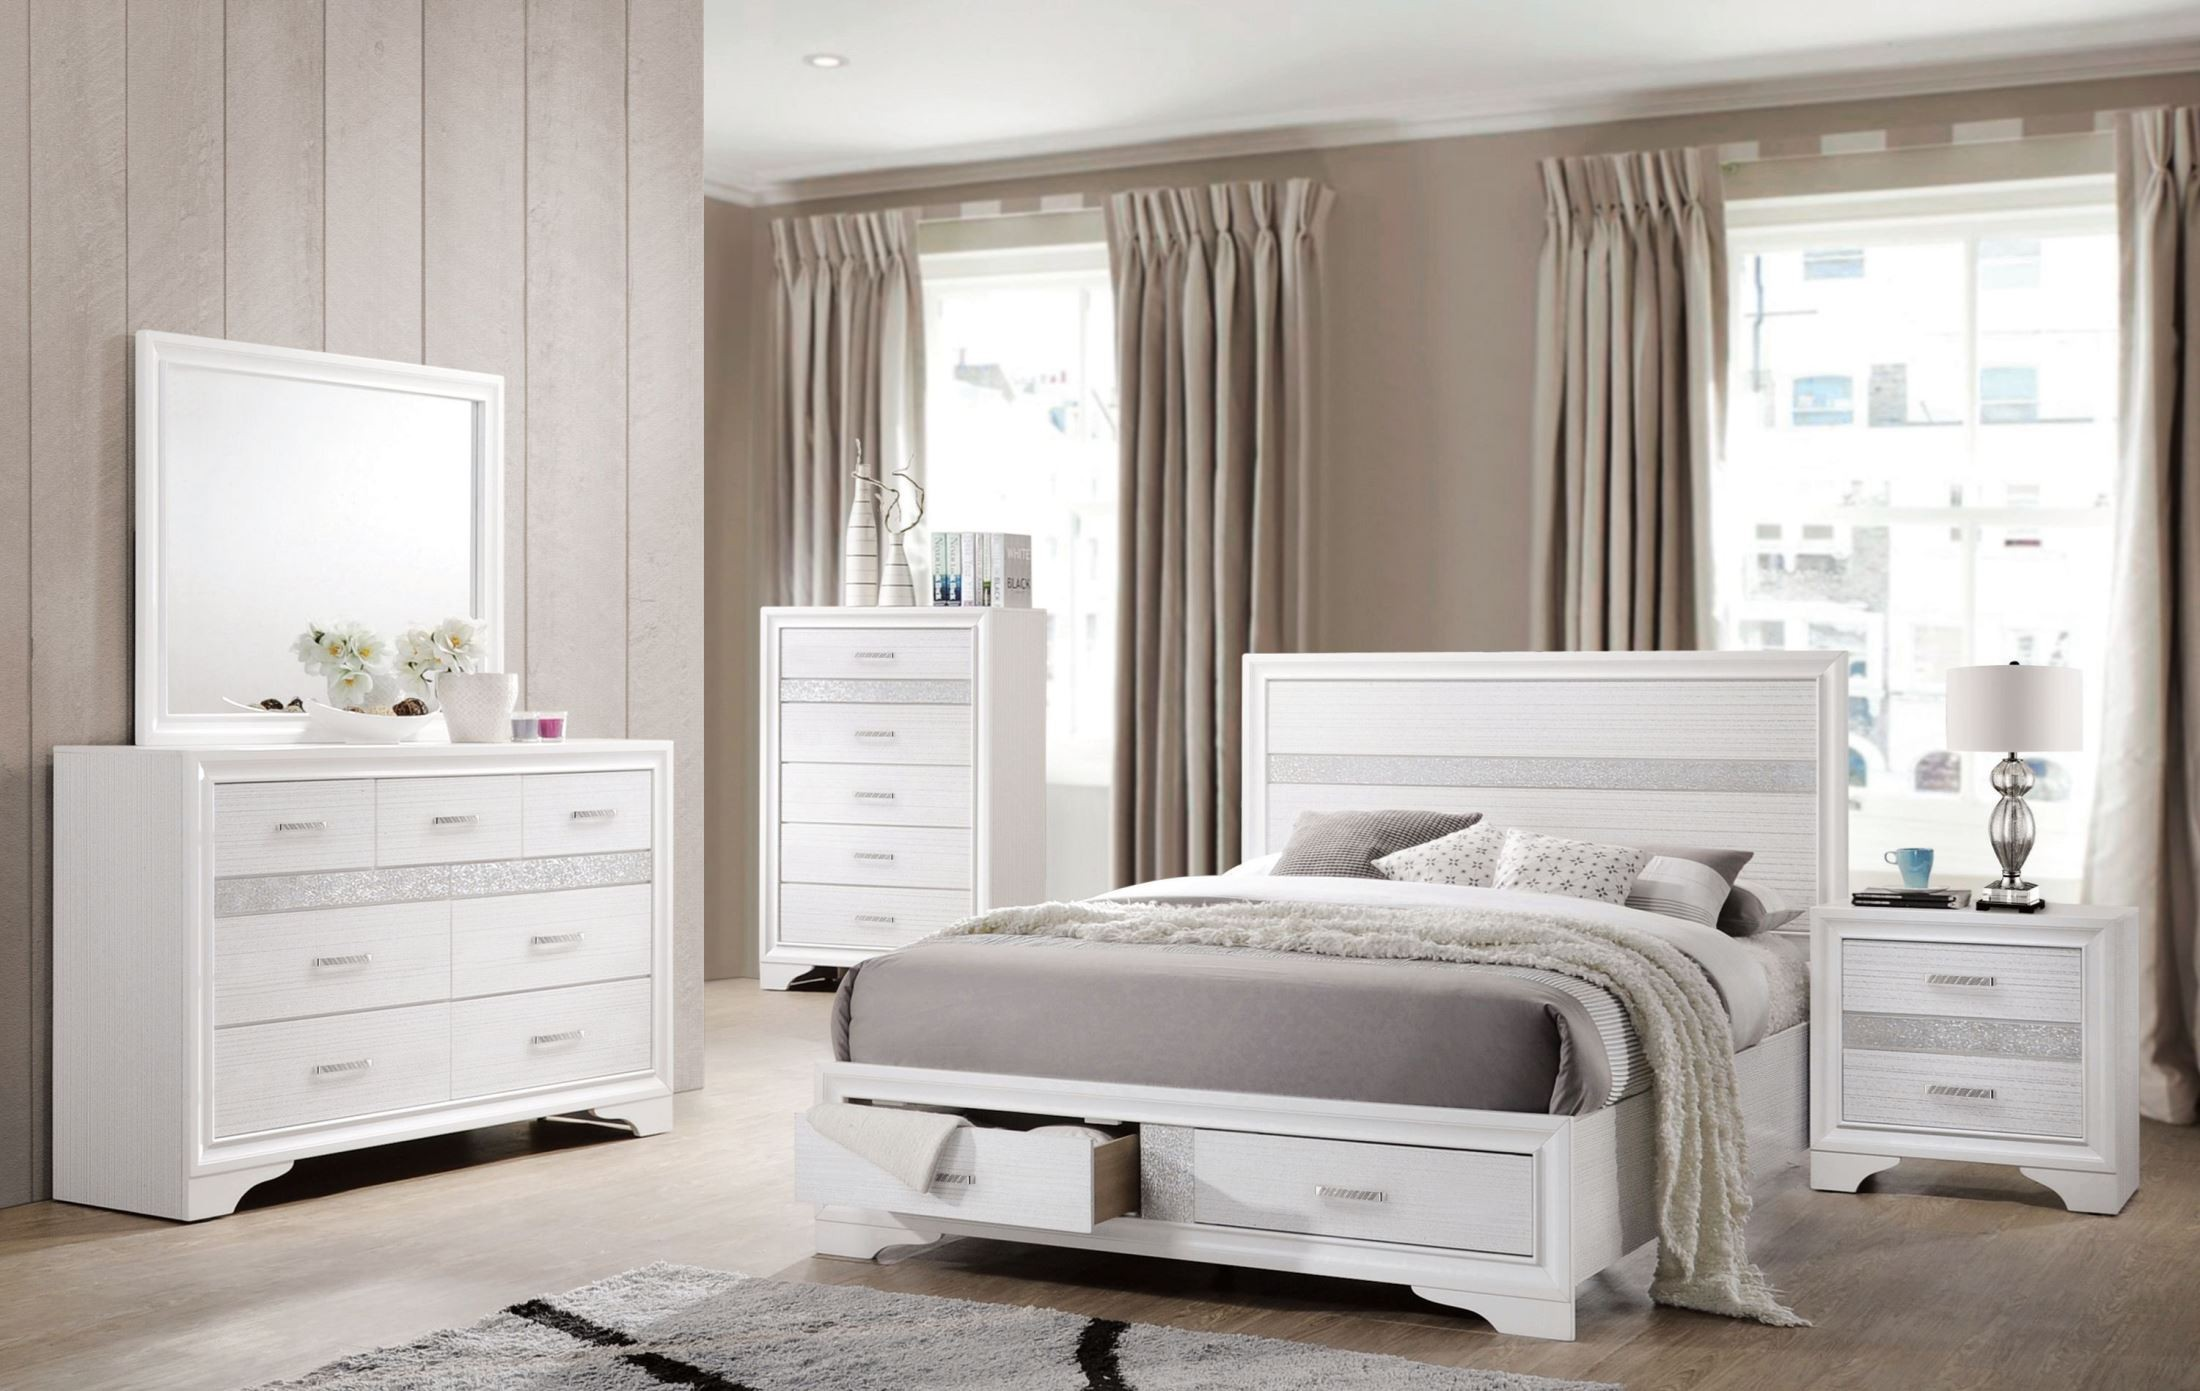 miranda white storage platform bedroom set from coaster 13826 | 205111q 205115 2